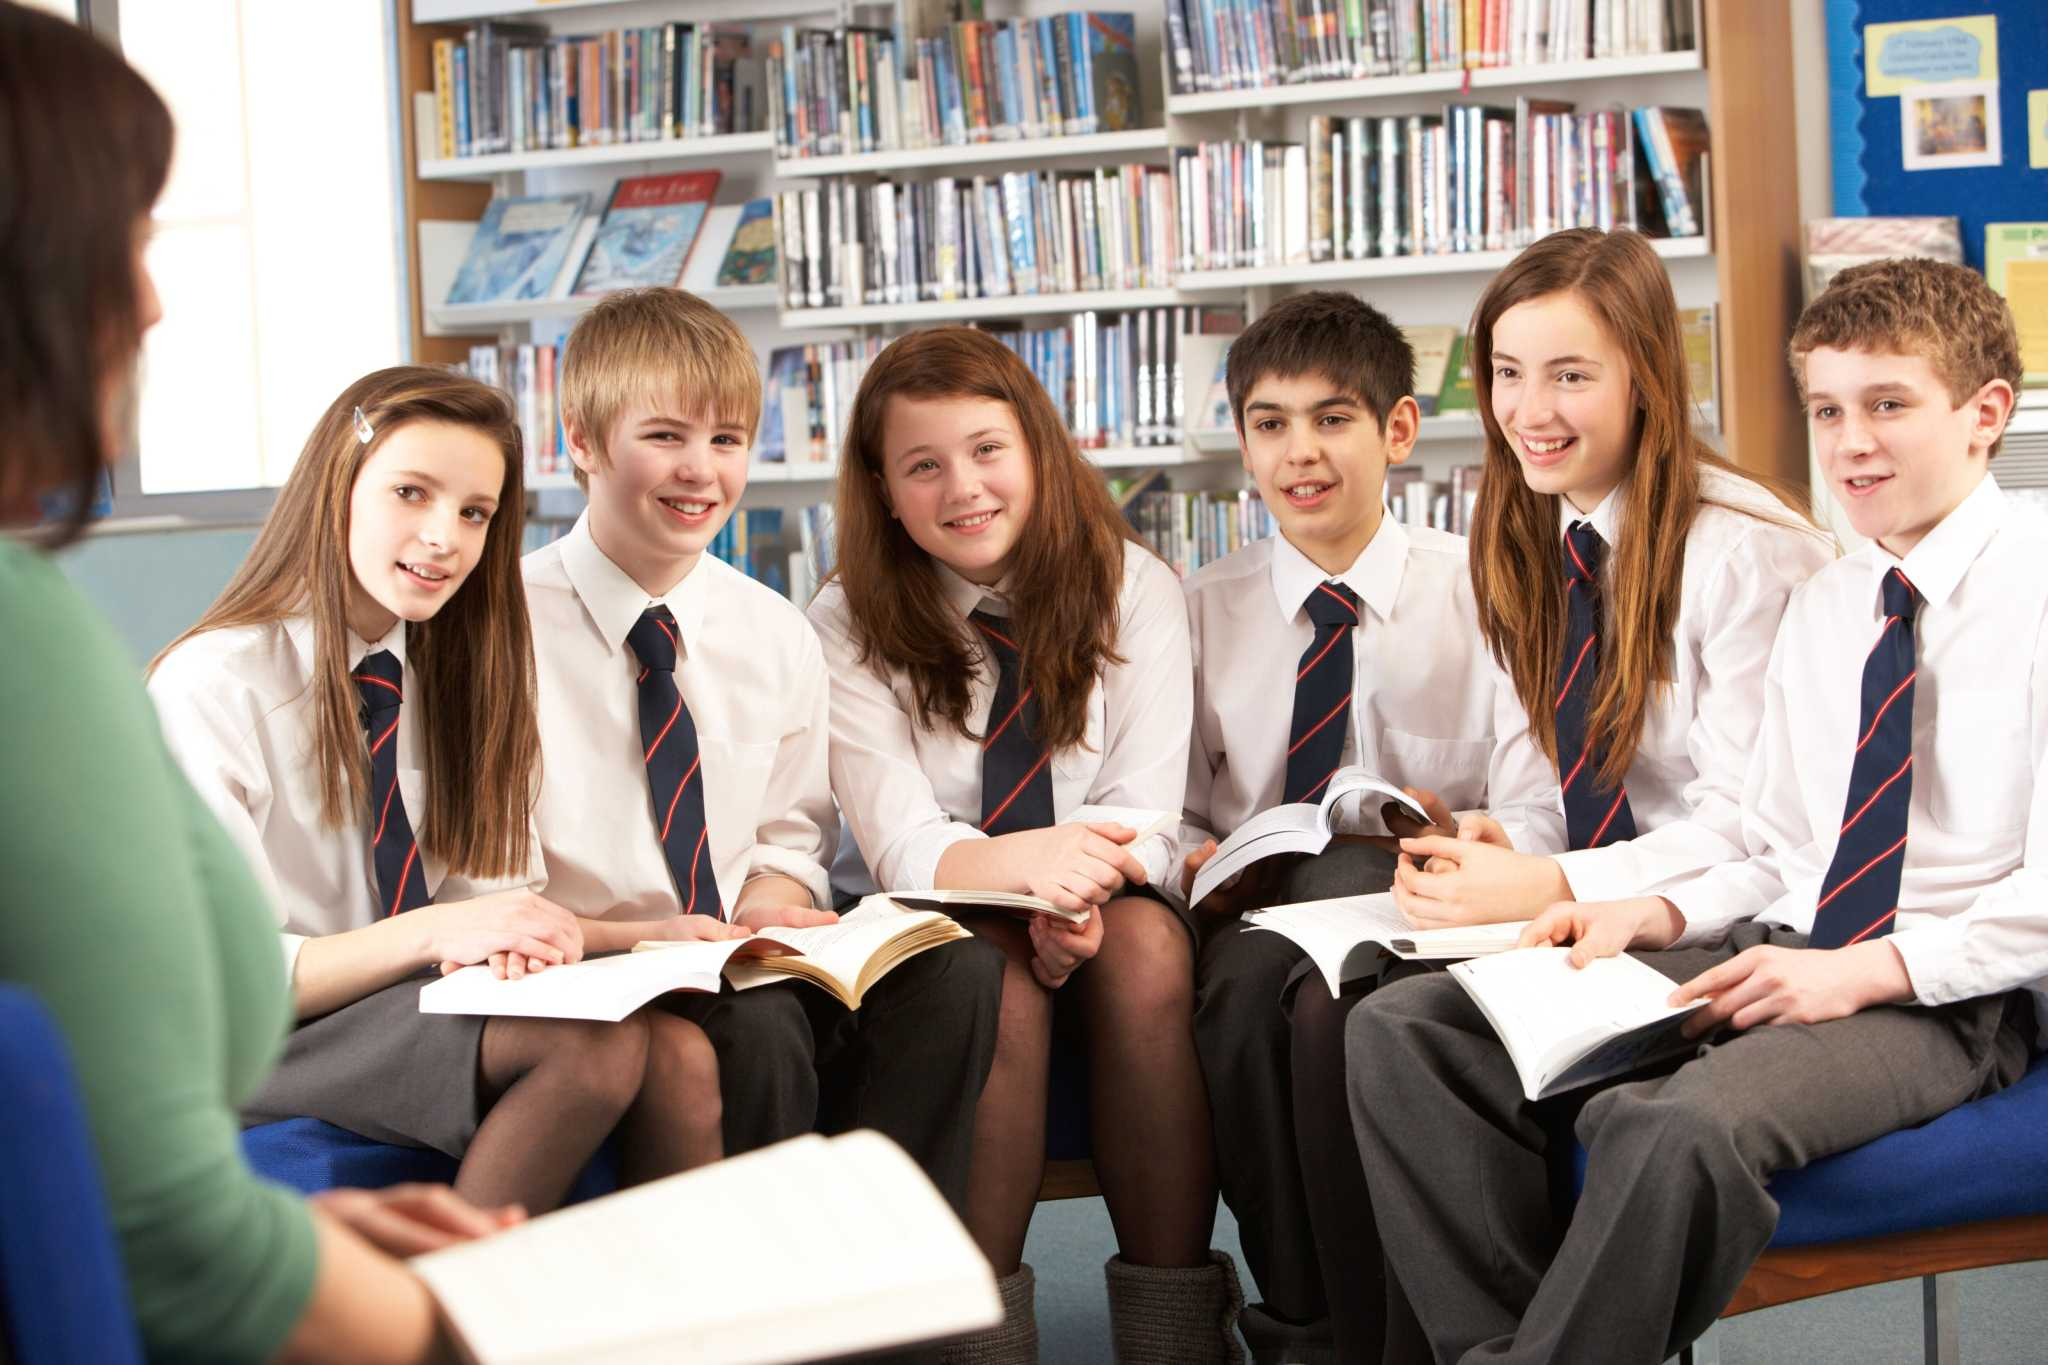 Secondary school library software pricing-Student photo